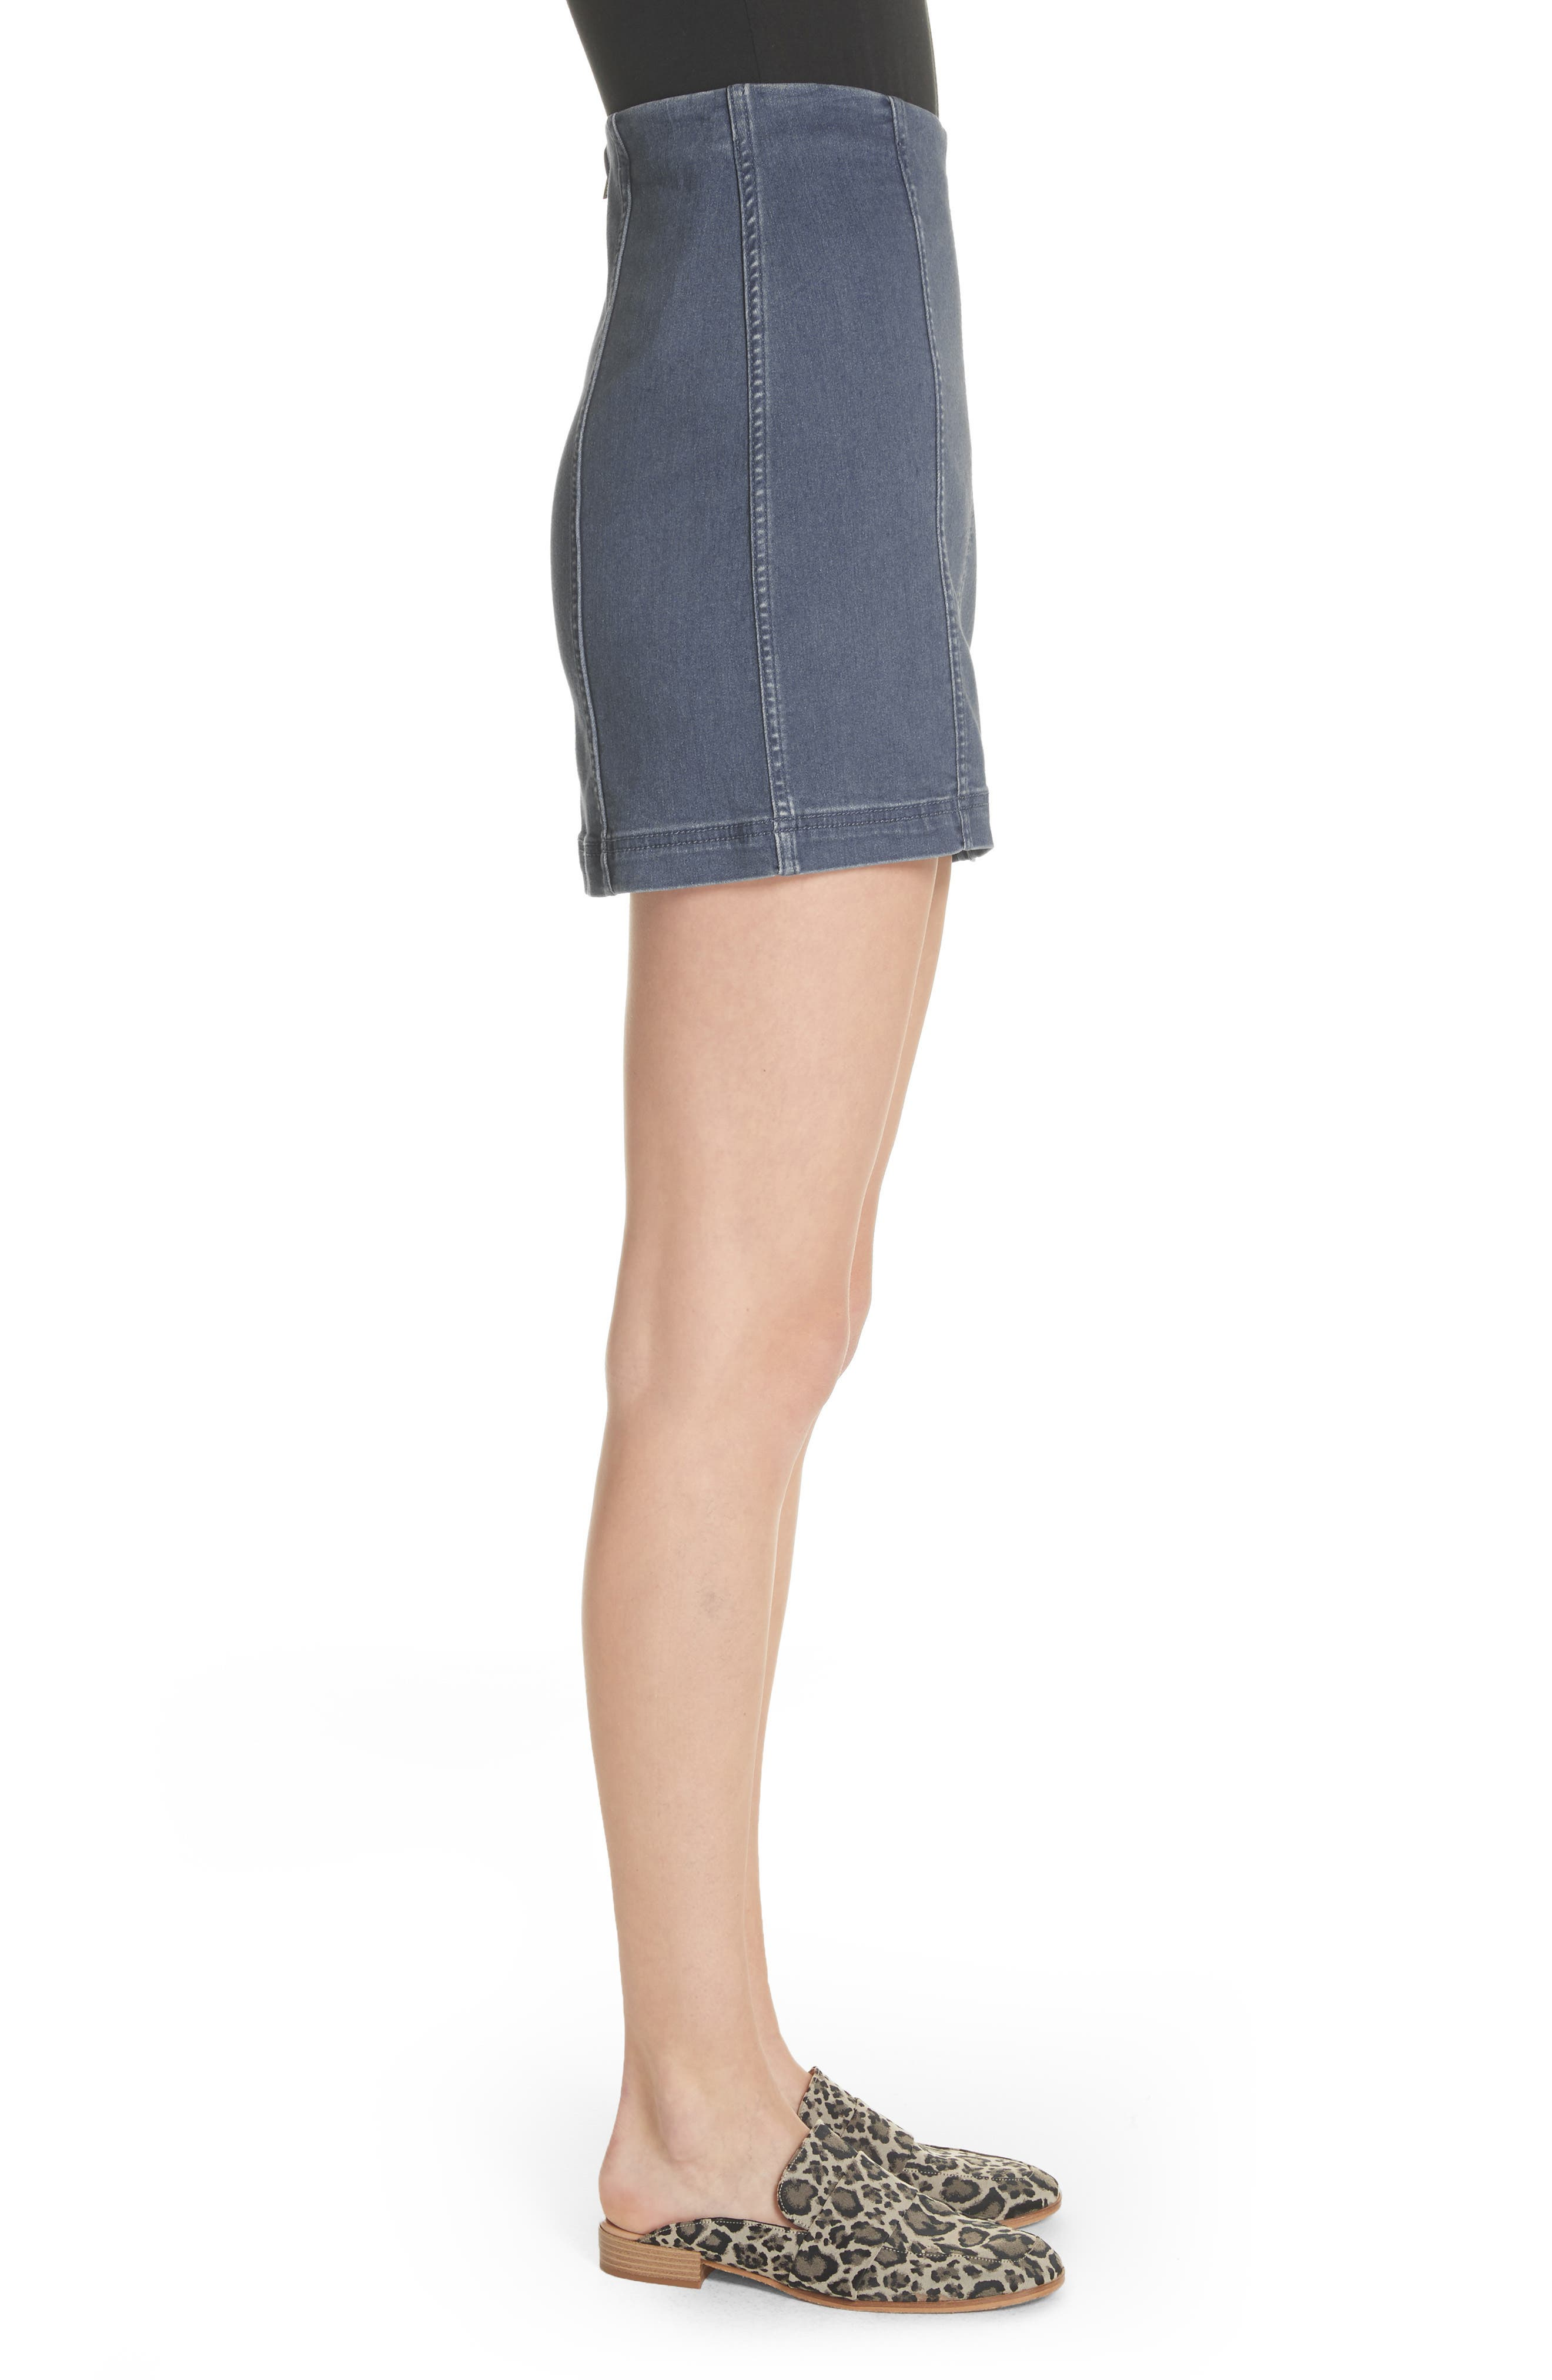 FREE PEOPLE, We the Free by Free People Modern Denim Miniskirt, Alternate thumbnail 4, color, 400